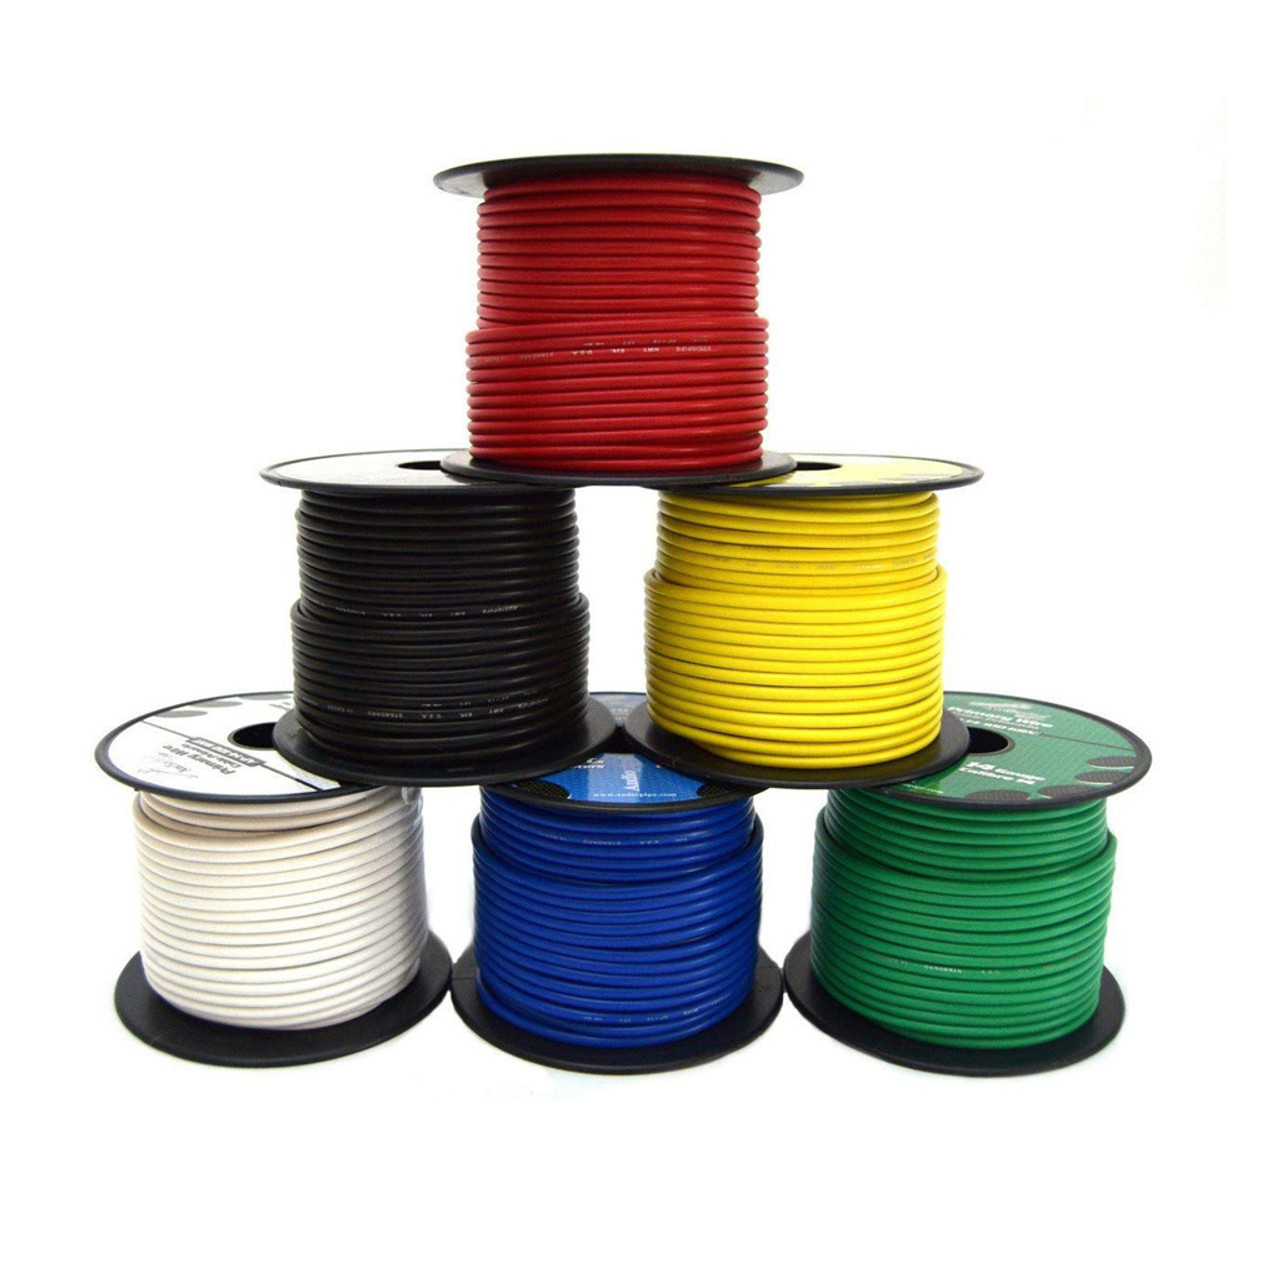 14 AWG Wire, Mil-Spec, For Tesla Coils